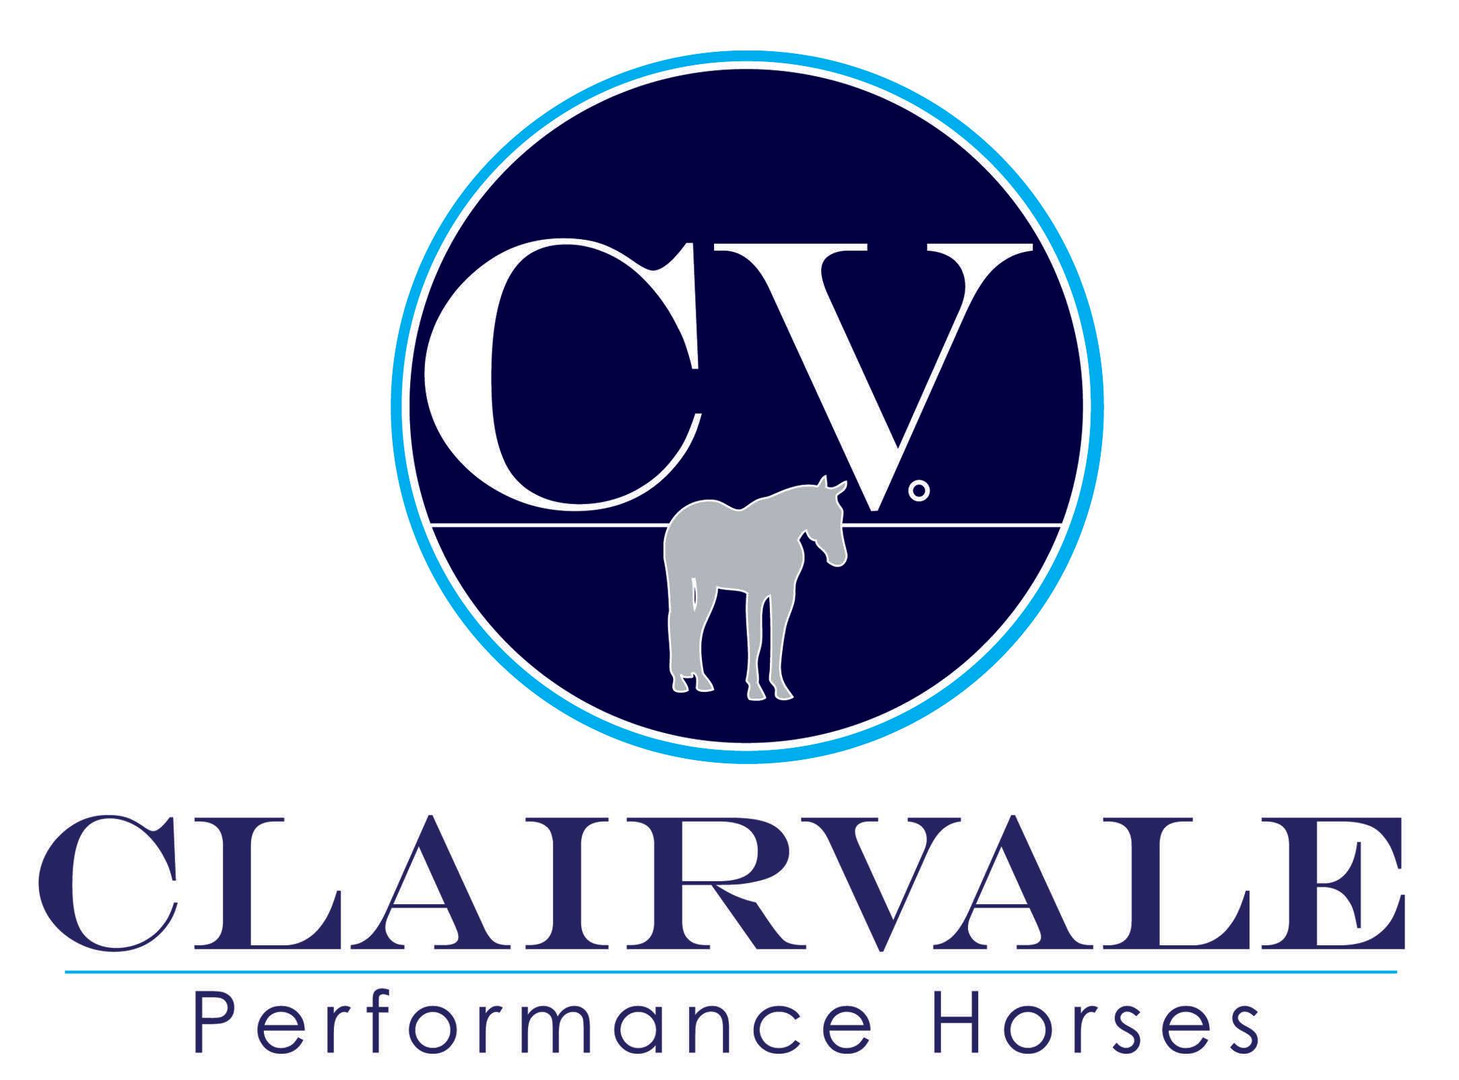 ClairvalePerformanceHorses LOGO.jpg